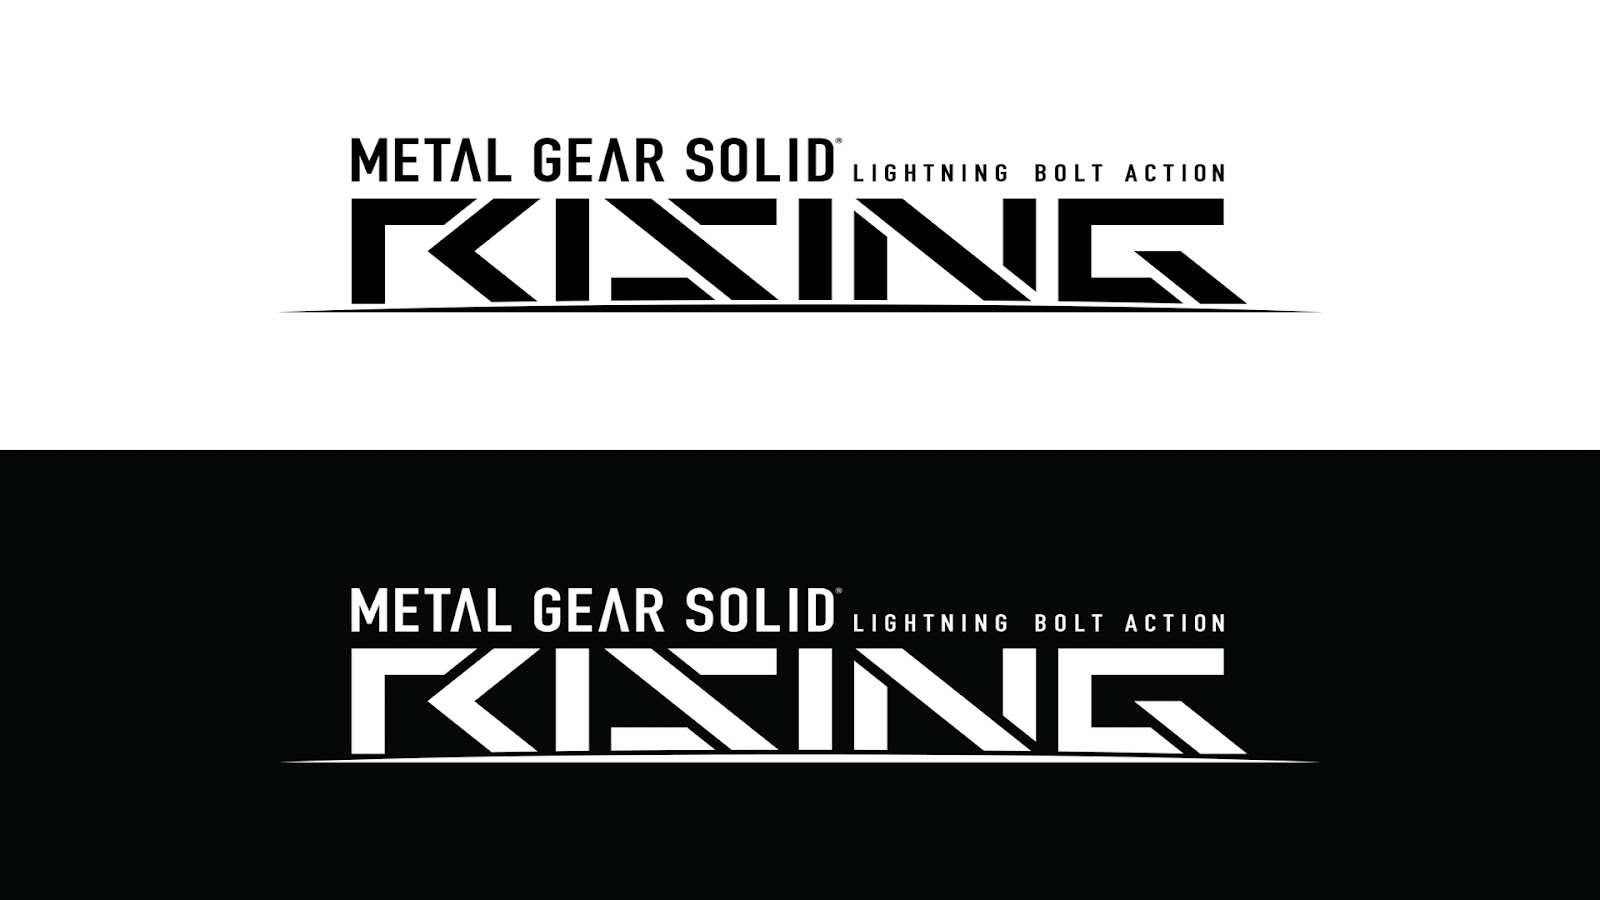 metal gear solid rising logo jpg 279951 Metal Gear Rising: Revengeance Wallpapers in HD